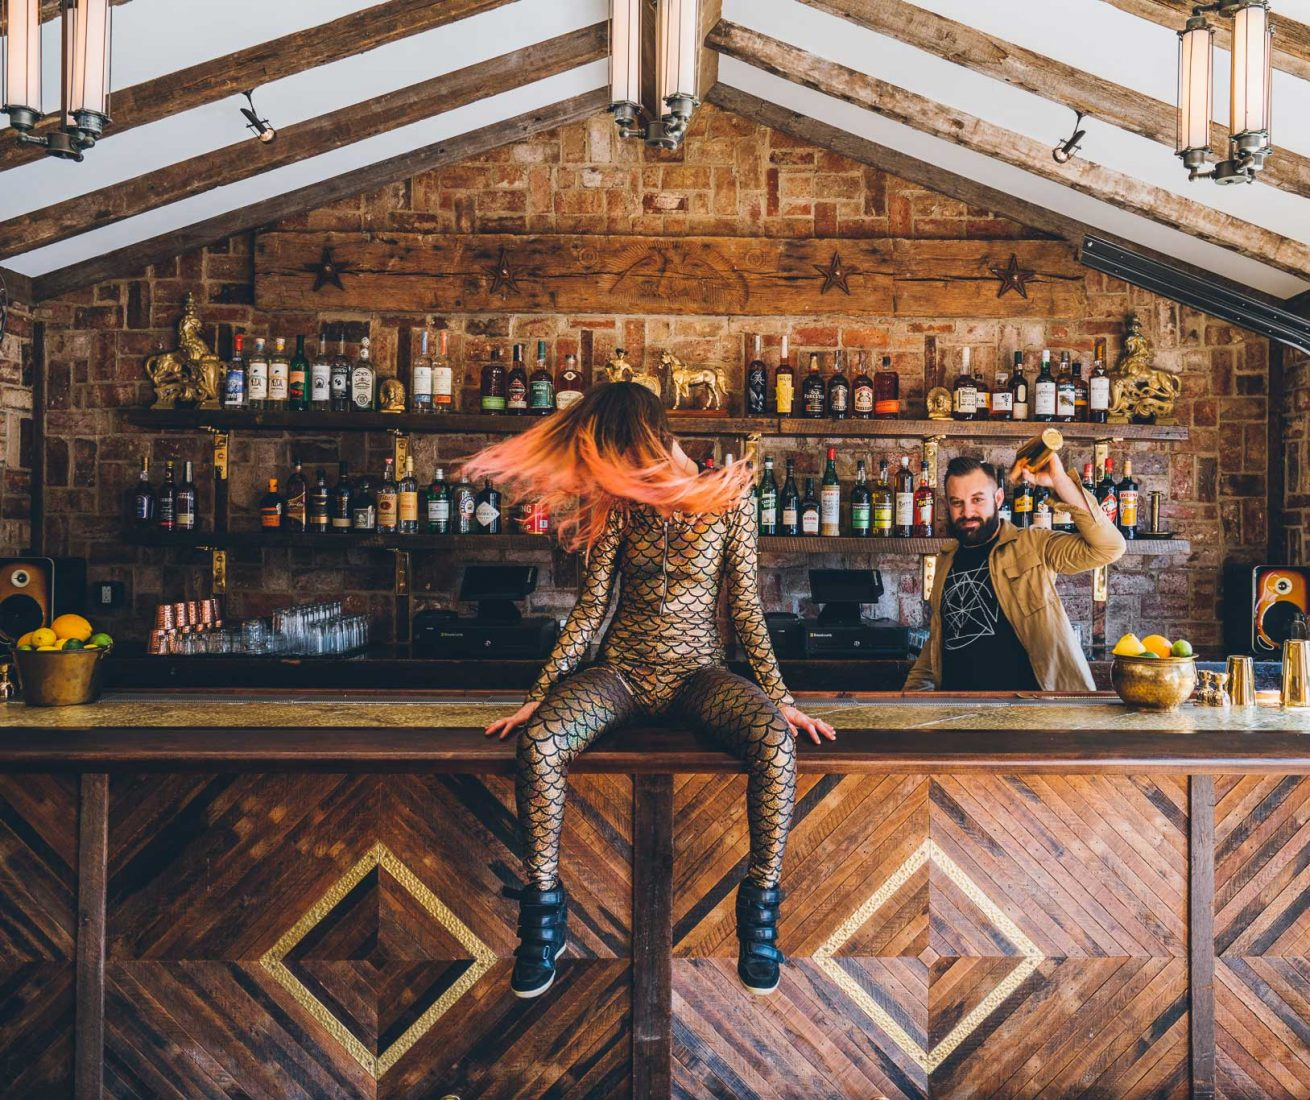 Orange haired dancer whipping her hair while seated on the bar of Public House. Photo by Dave Krugman.